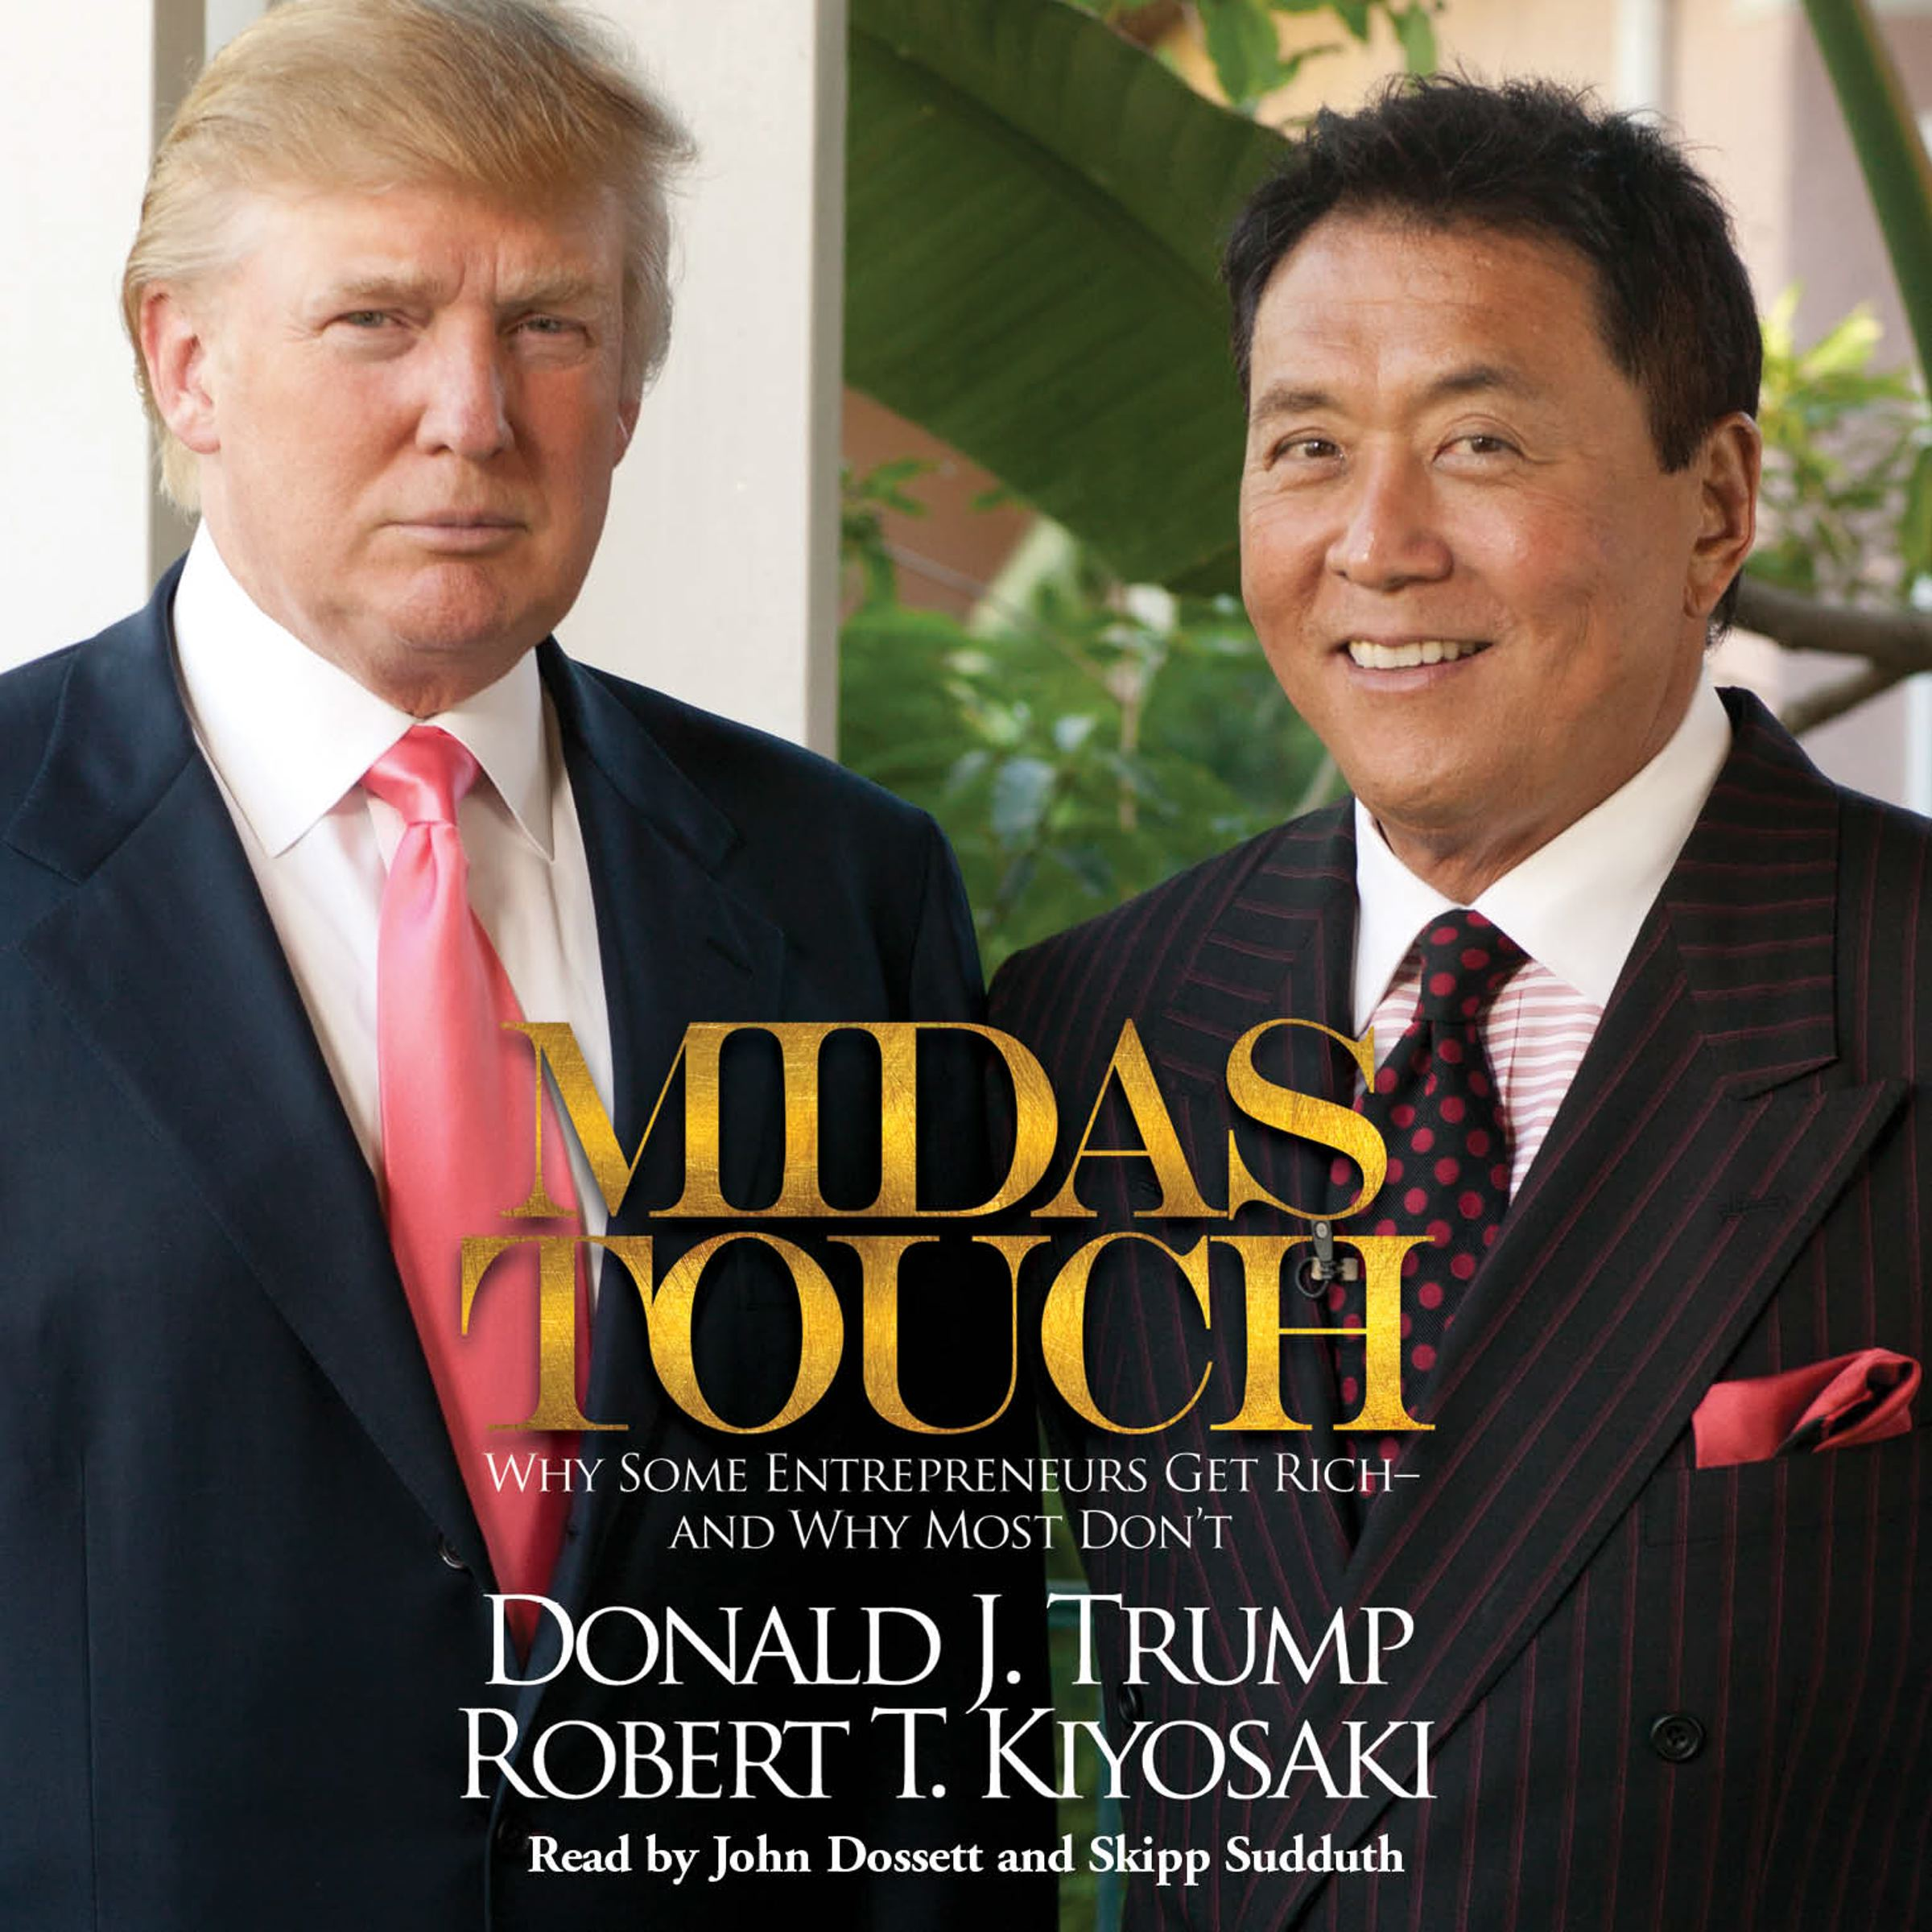 Midas touch 9781442347960 hr